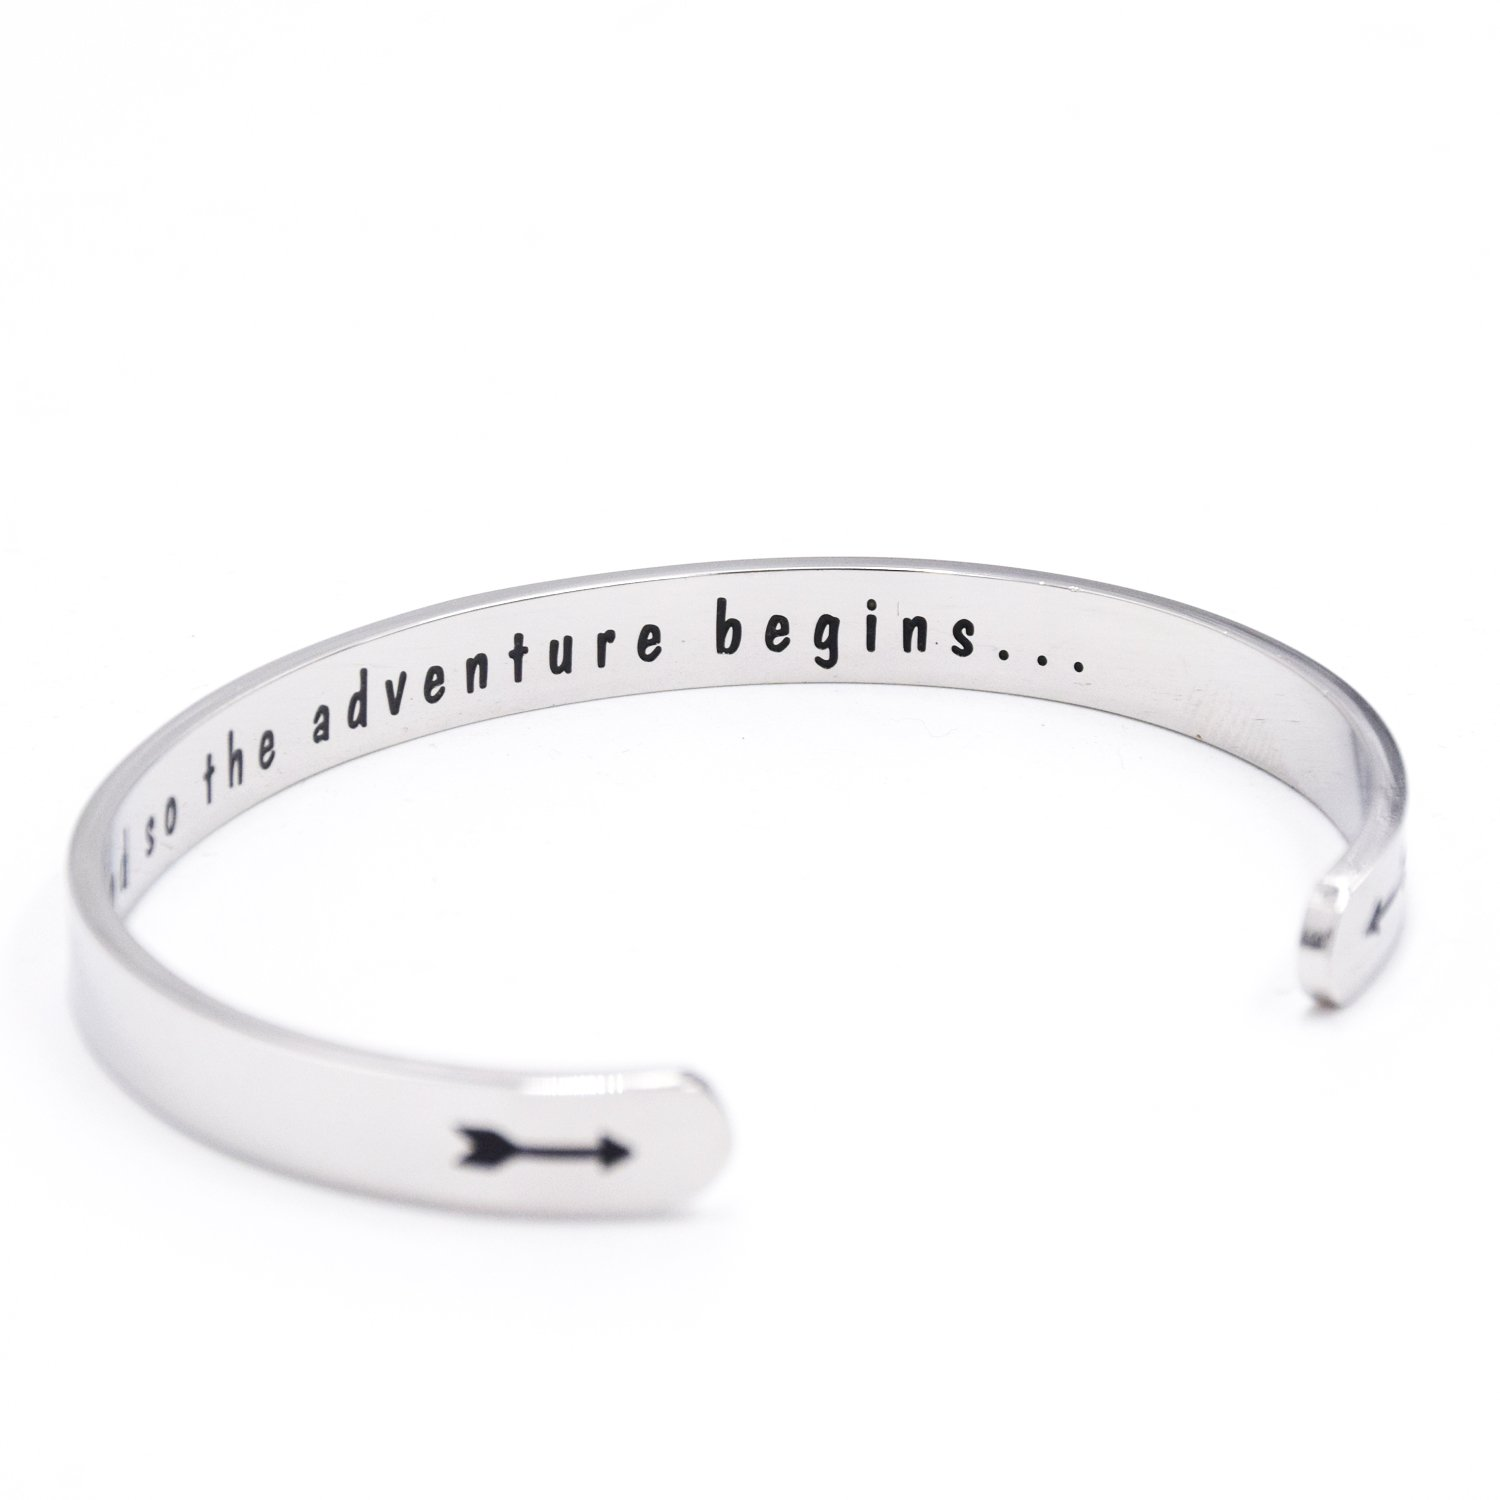 LParkin Class of 2018 2019 Gift And So the Adventure Begins Cuff Bracelet Graduation Gift (Cuff) by LParkin (Image #2)